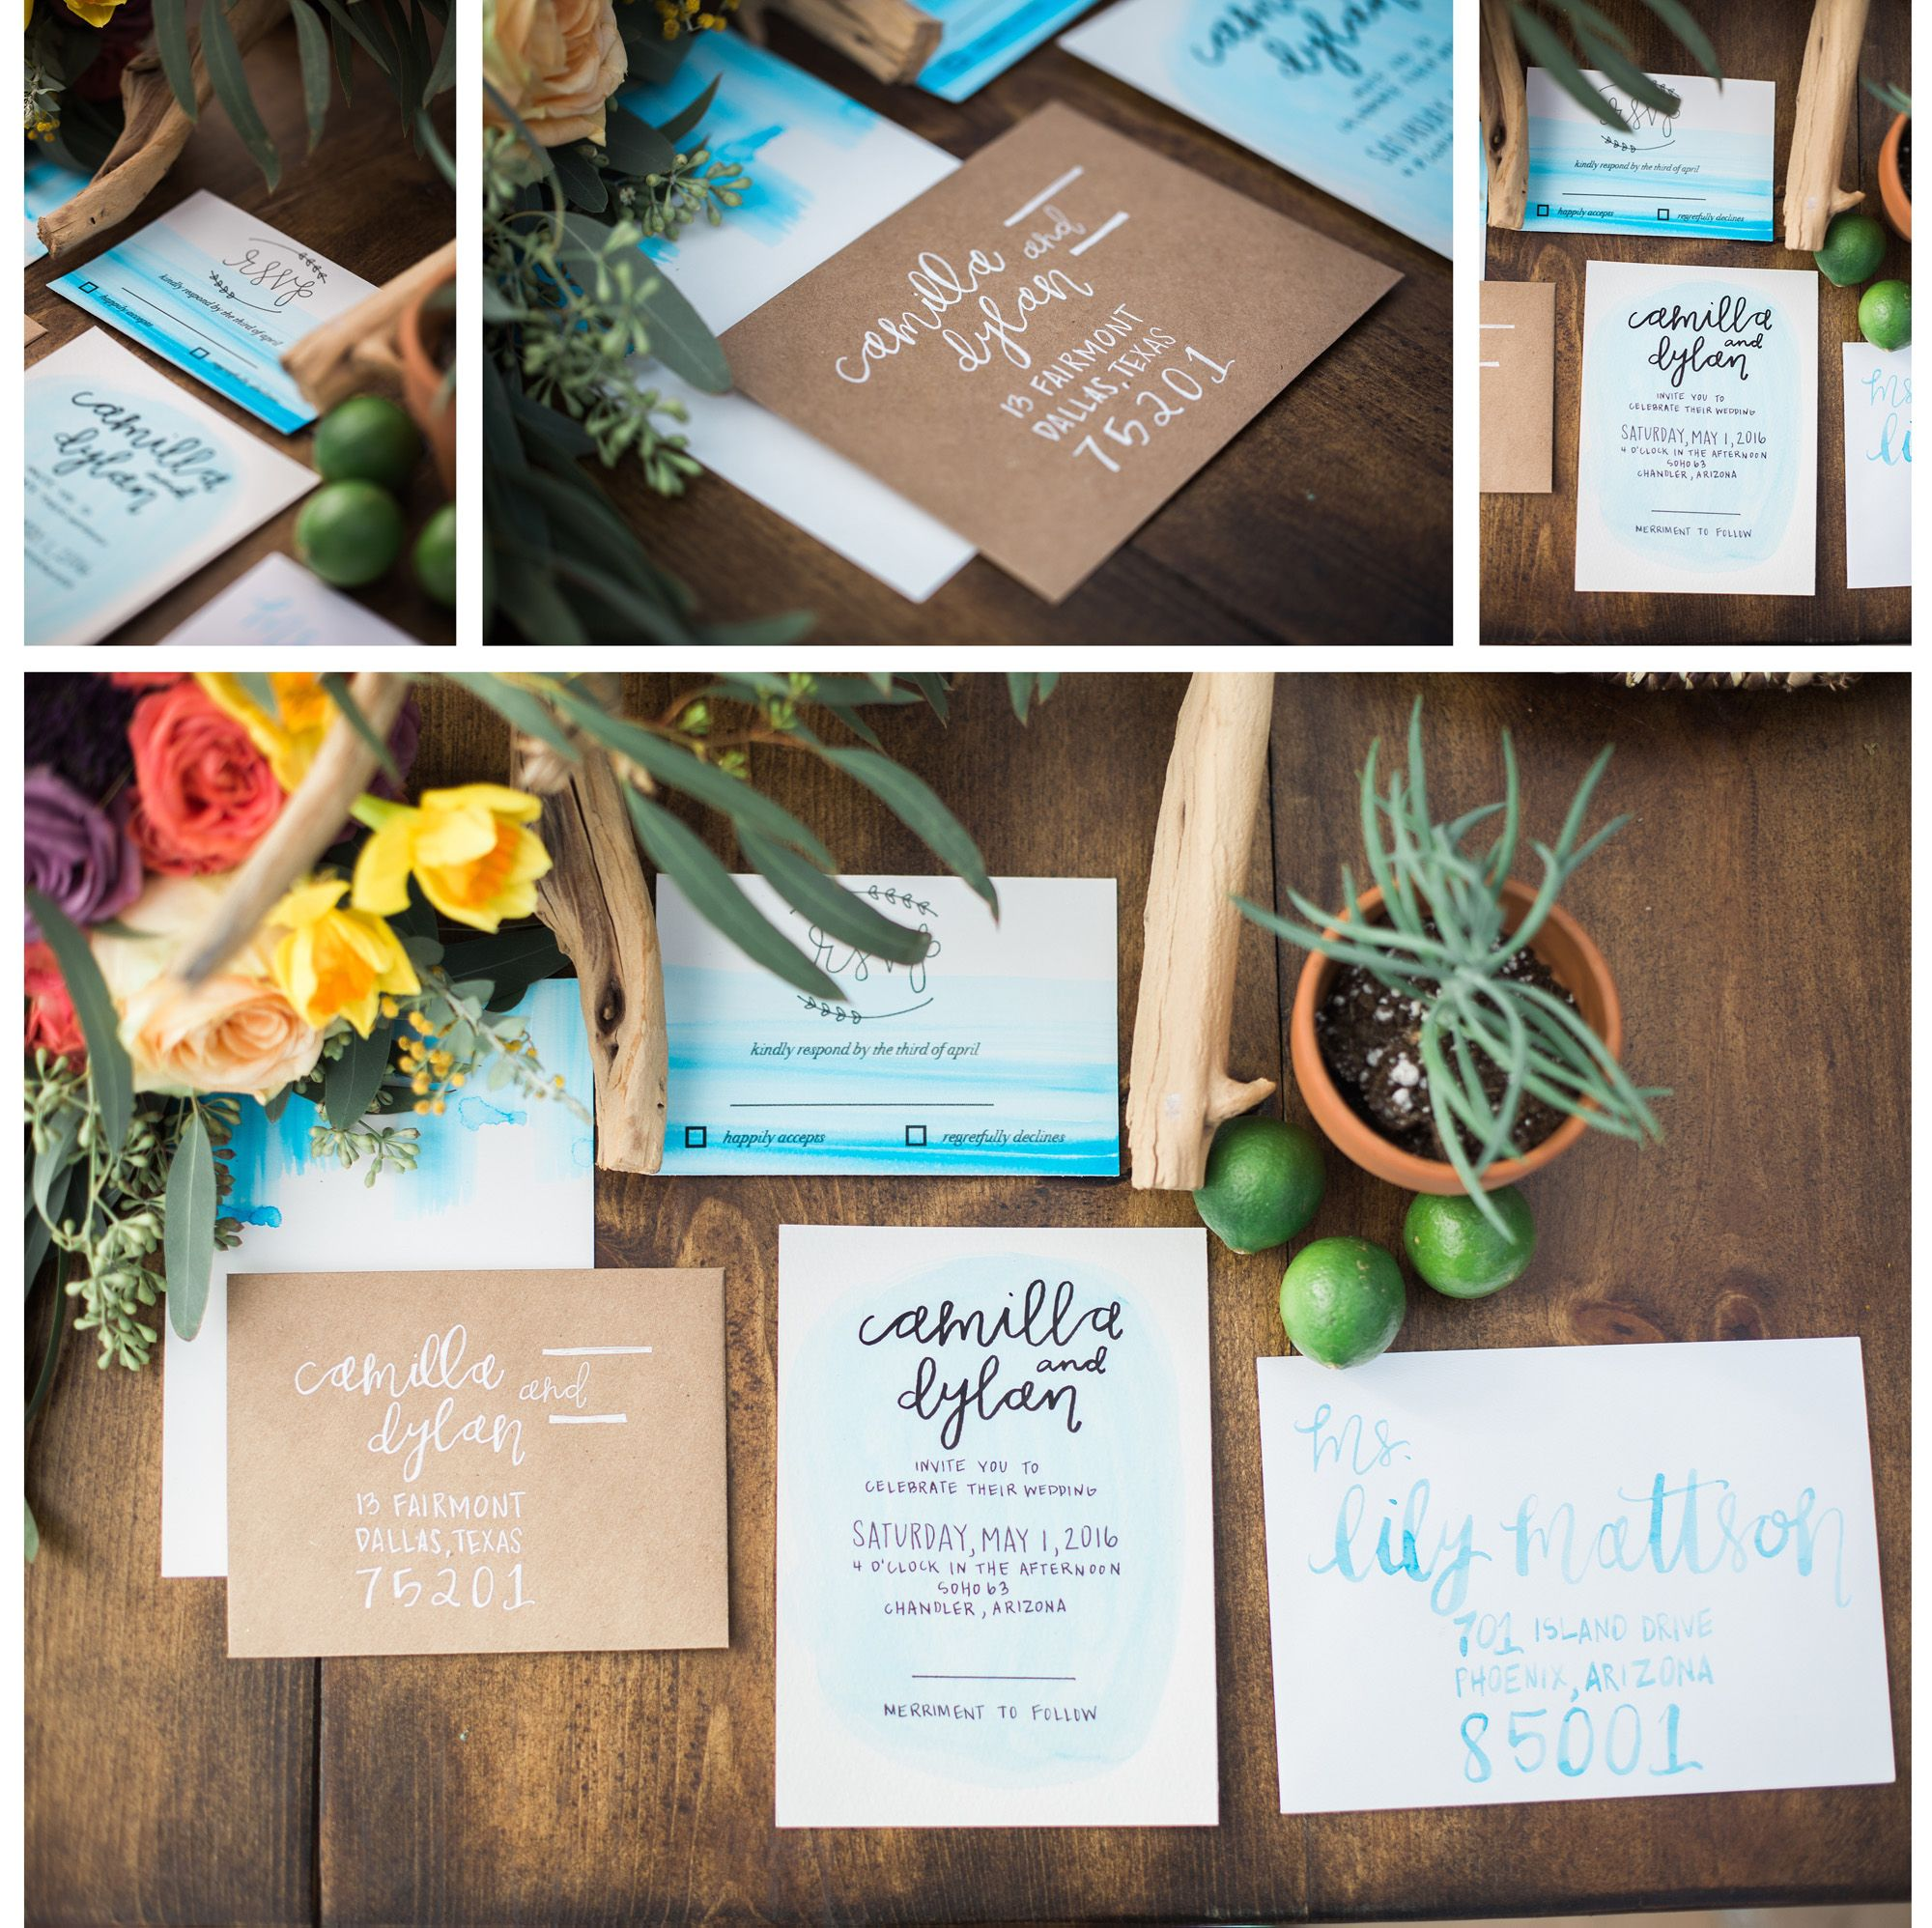 Watercolor southwest wedding invitations the creative team venue watercolor southwest wedding invitations the creative team venue and furniture rentalstremaine ranch floral malvernweather Image collections